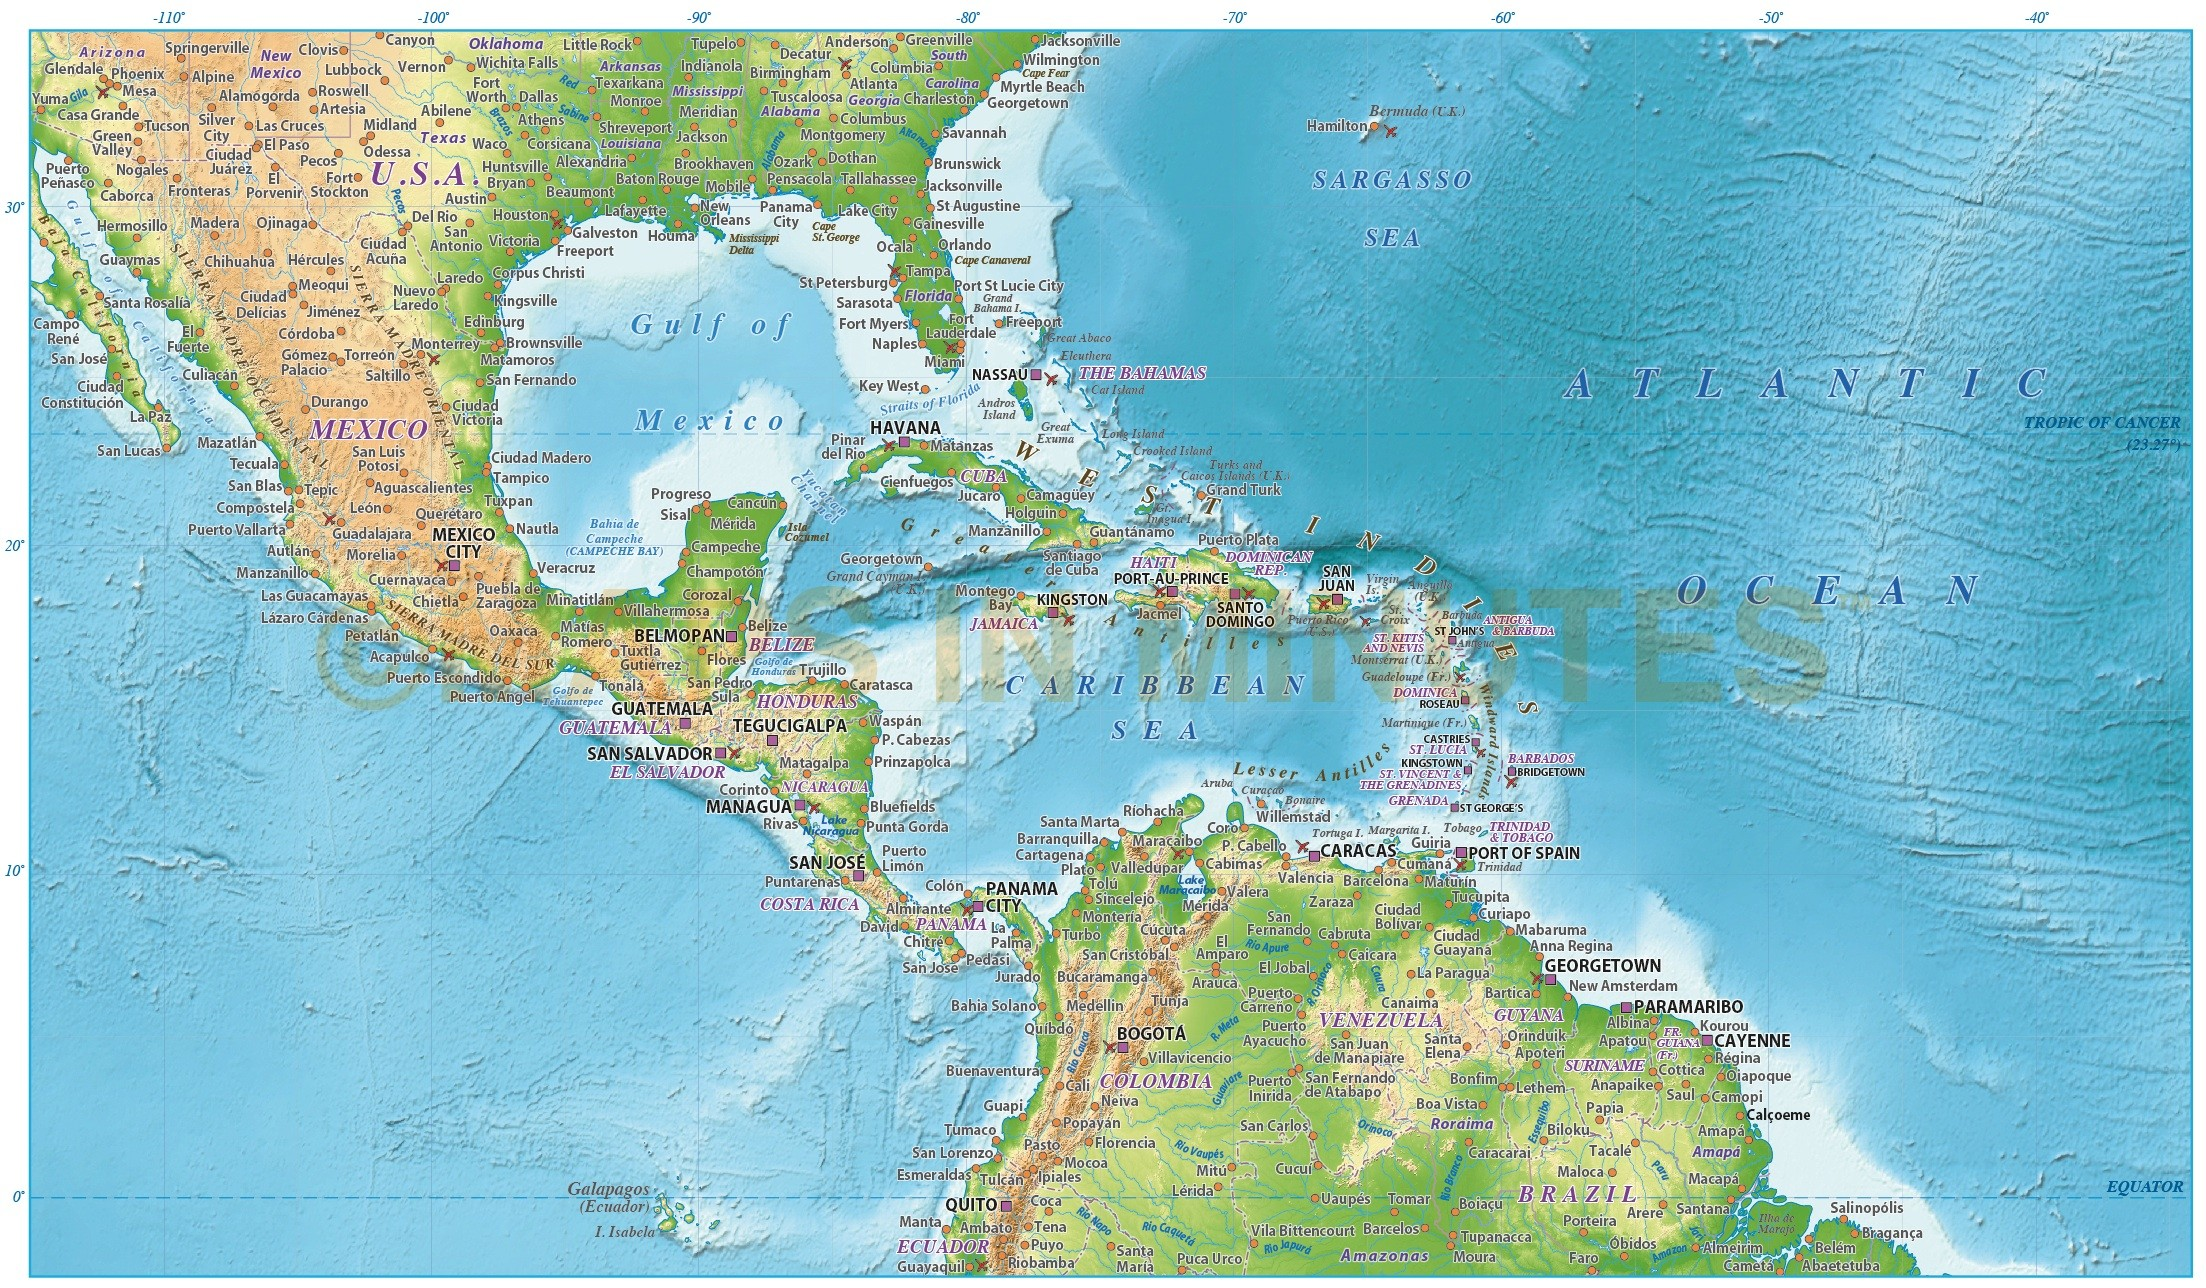 Caribbean map with land and ocean floor relief 10m scale in central america caribbean relief map 10m scale showing land and ocean floor terrain publicscrutiny Choice Image